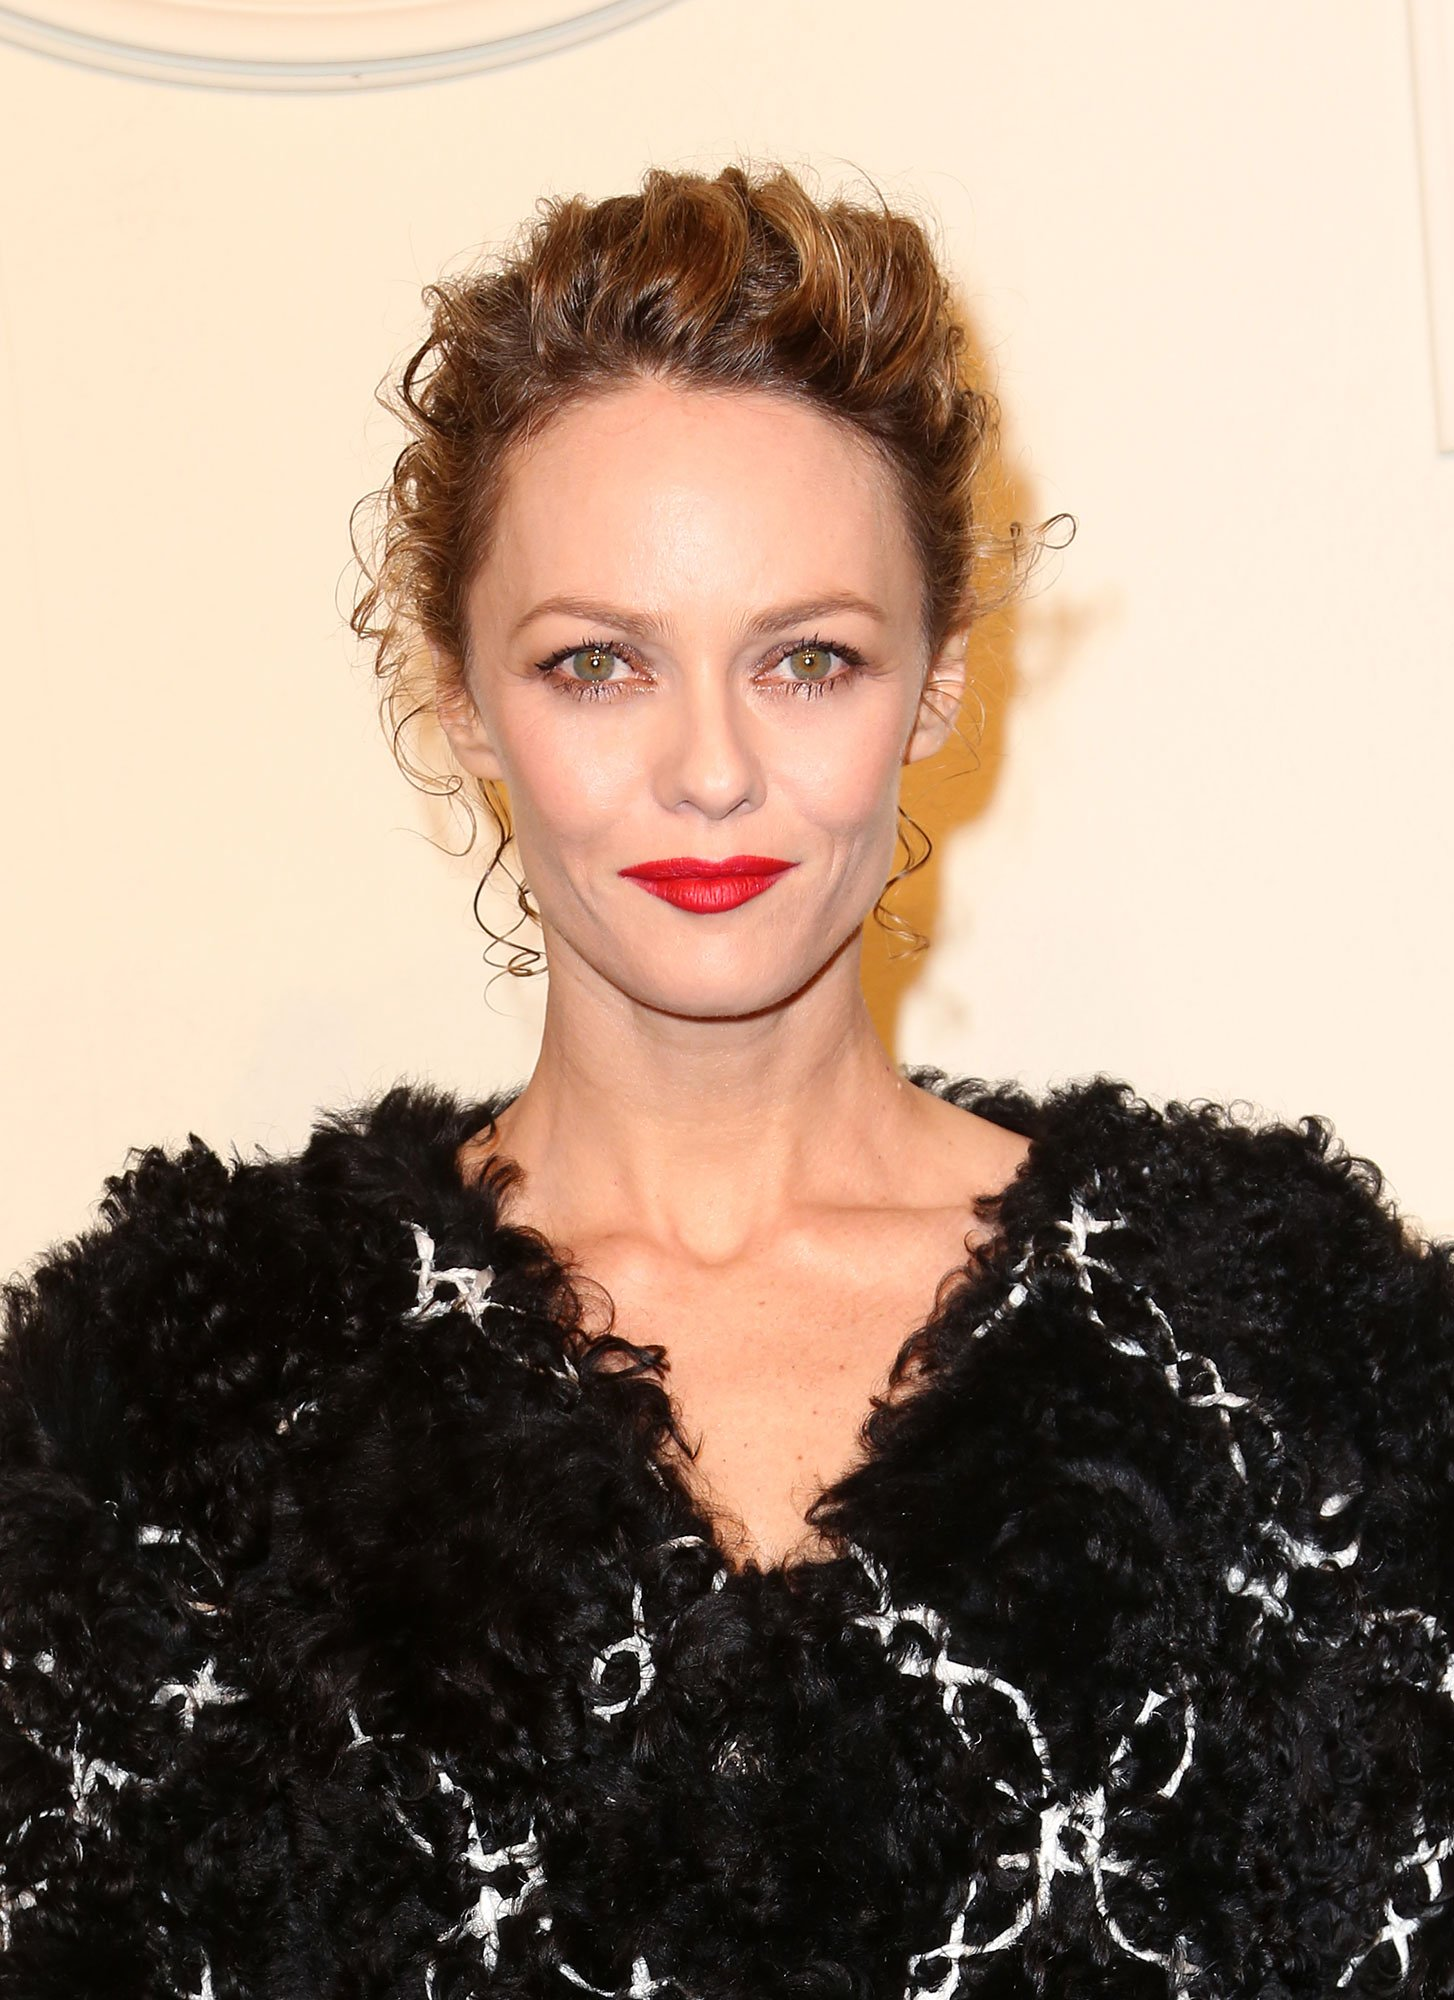 Vanessa Paradis Photos HD | Full HD Pictures Vanessa Paradis